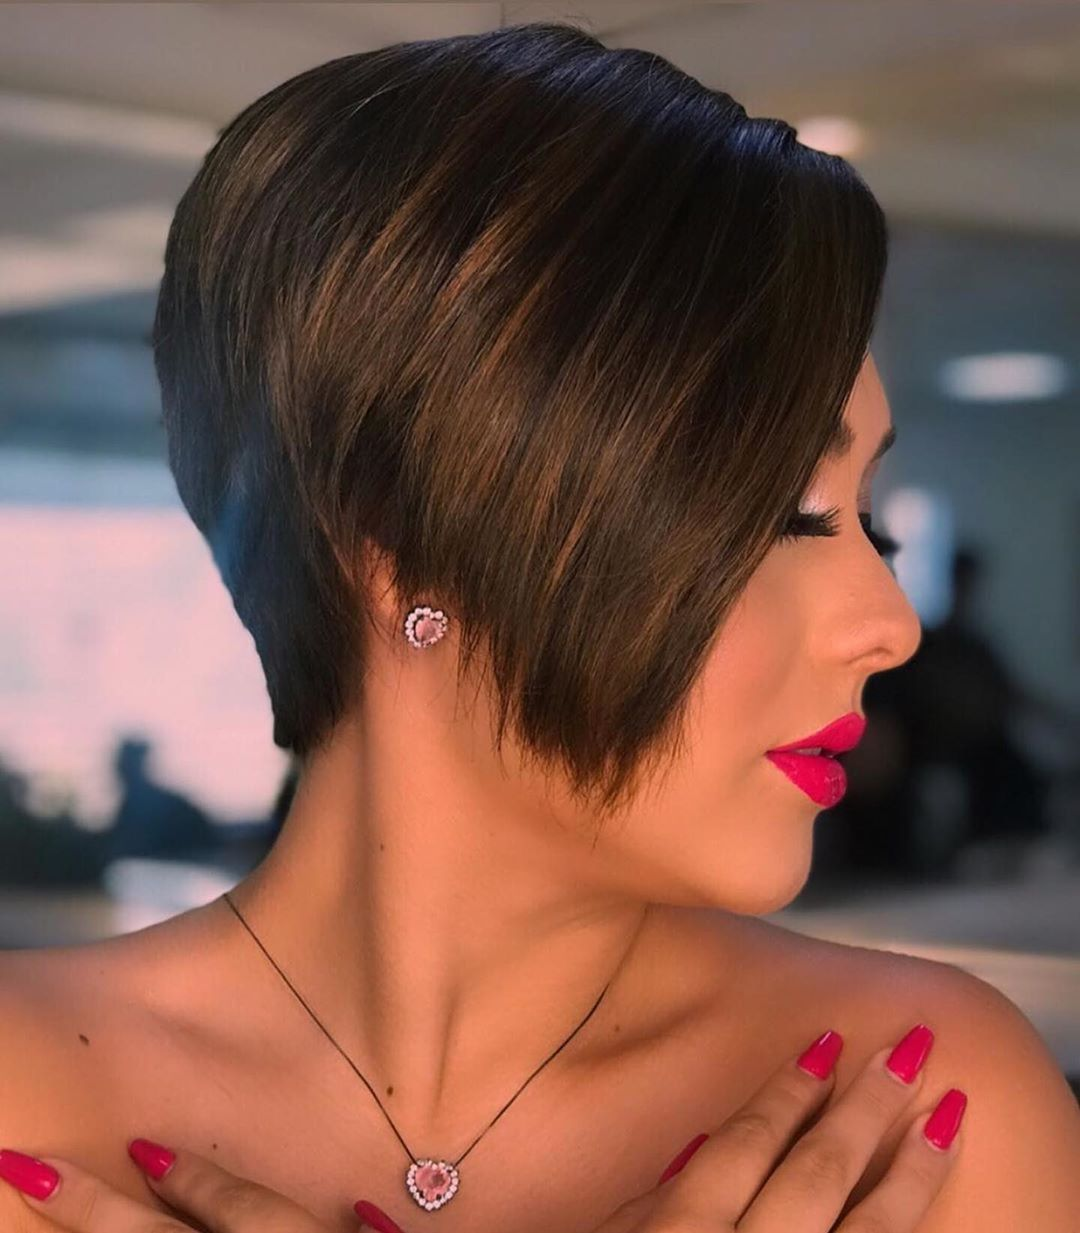 100 Short Haircut Styles for Over 60 Women in 2021 1d72722c6be230f9918e84f81cc312f8